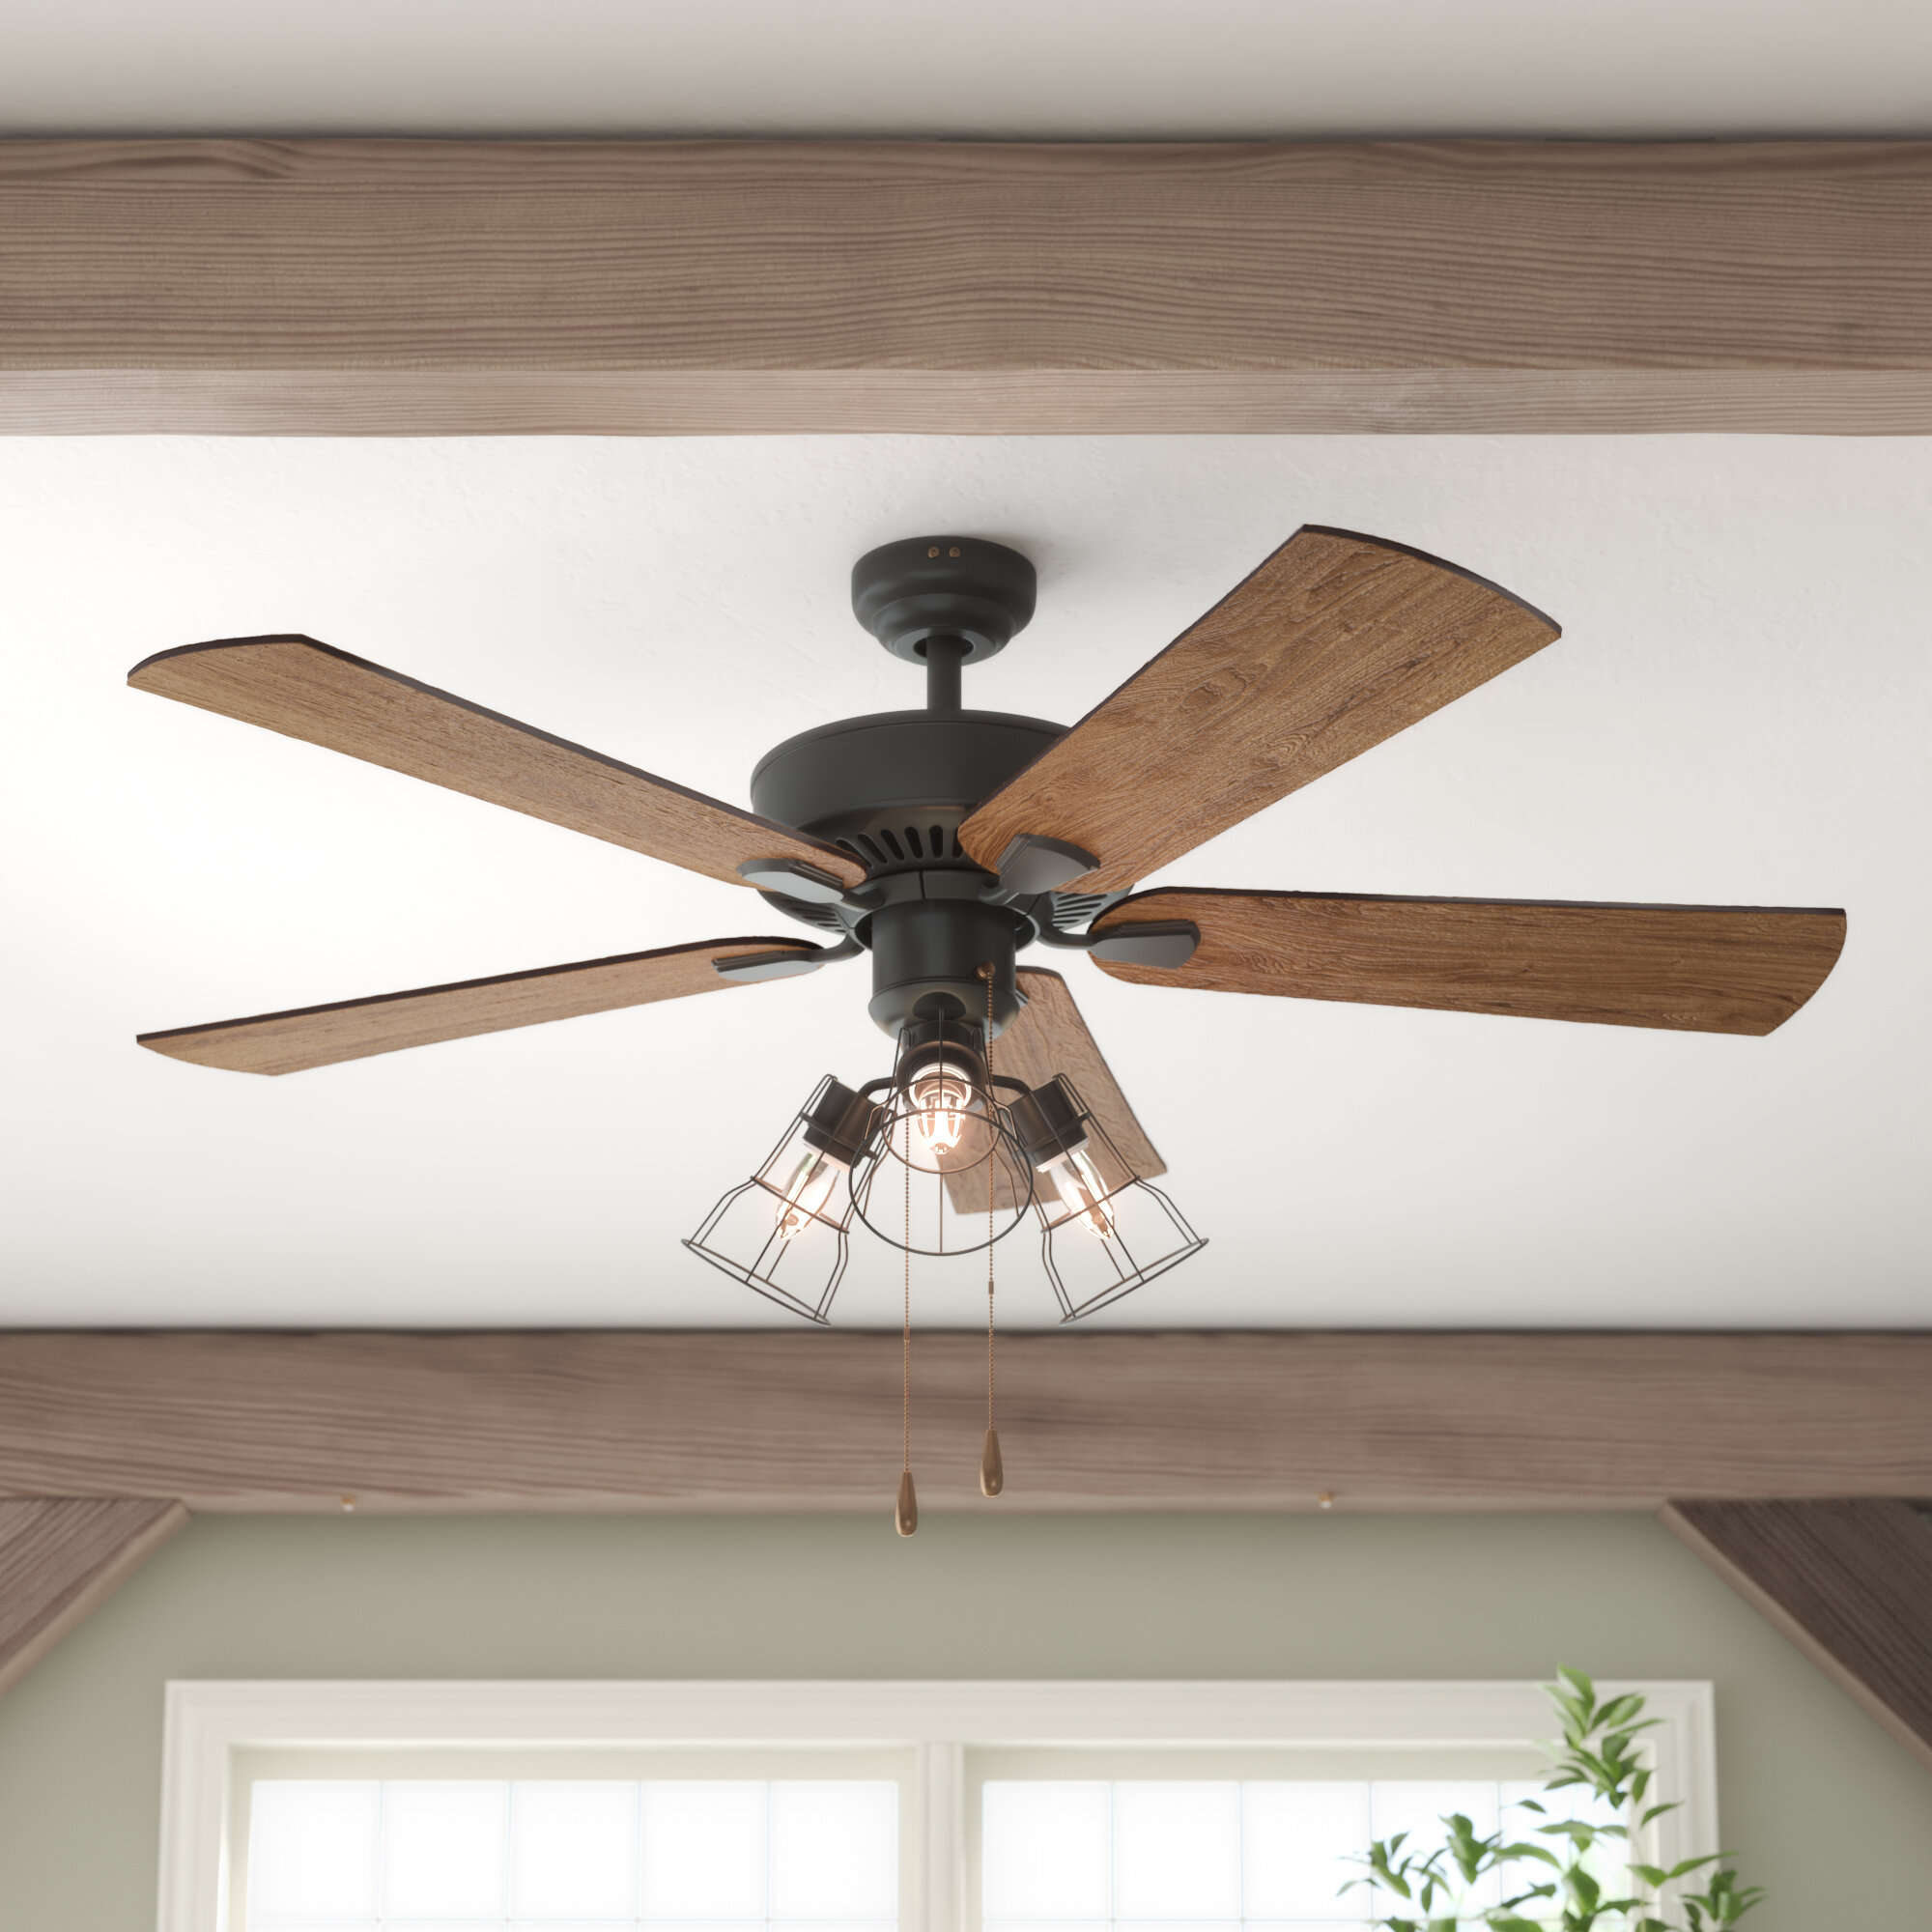 Three Posts 52 Socorro 5 Blade Led Standard Ceiling Fan With Light Kit Included Reviews Wayfair